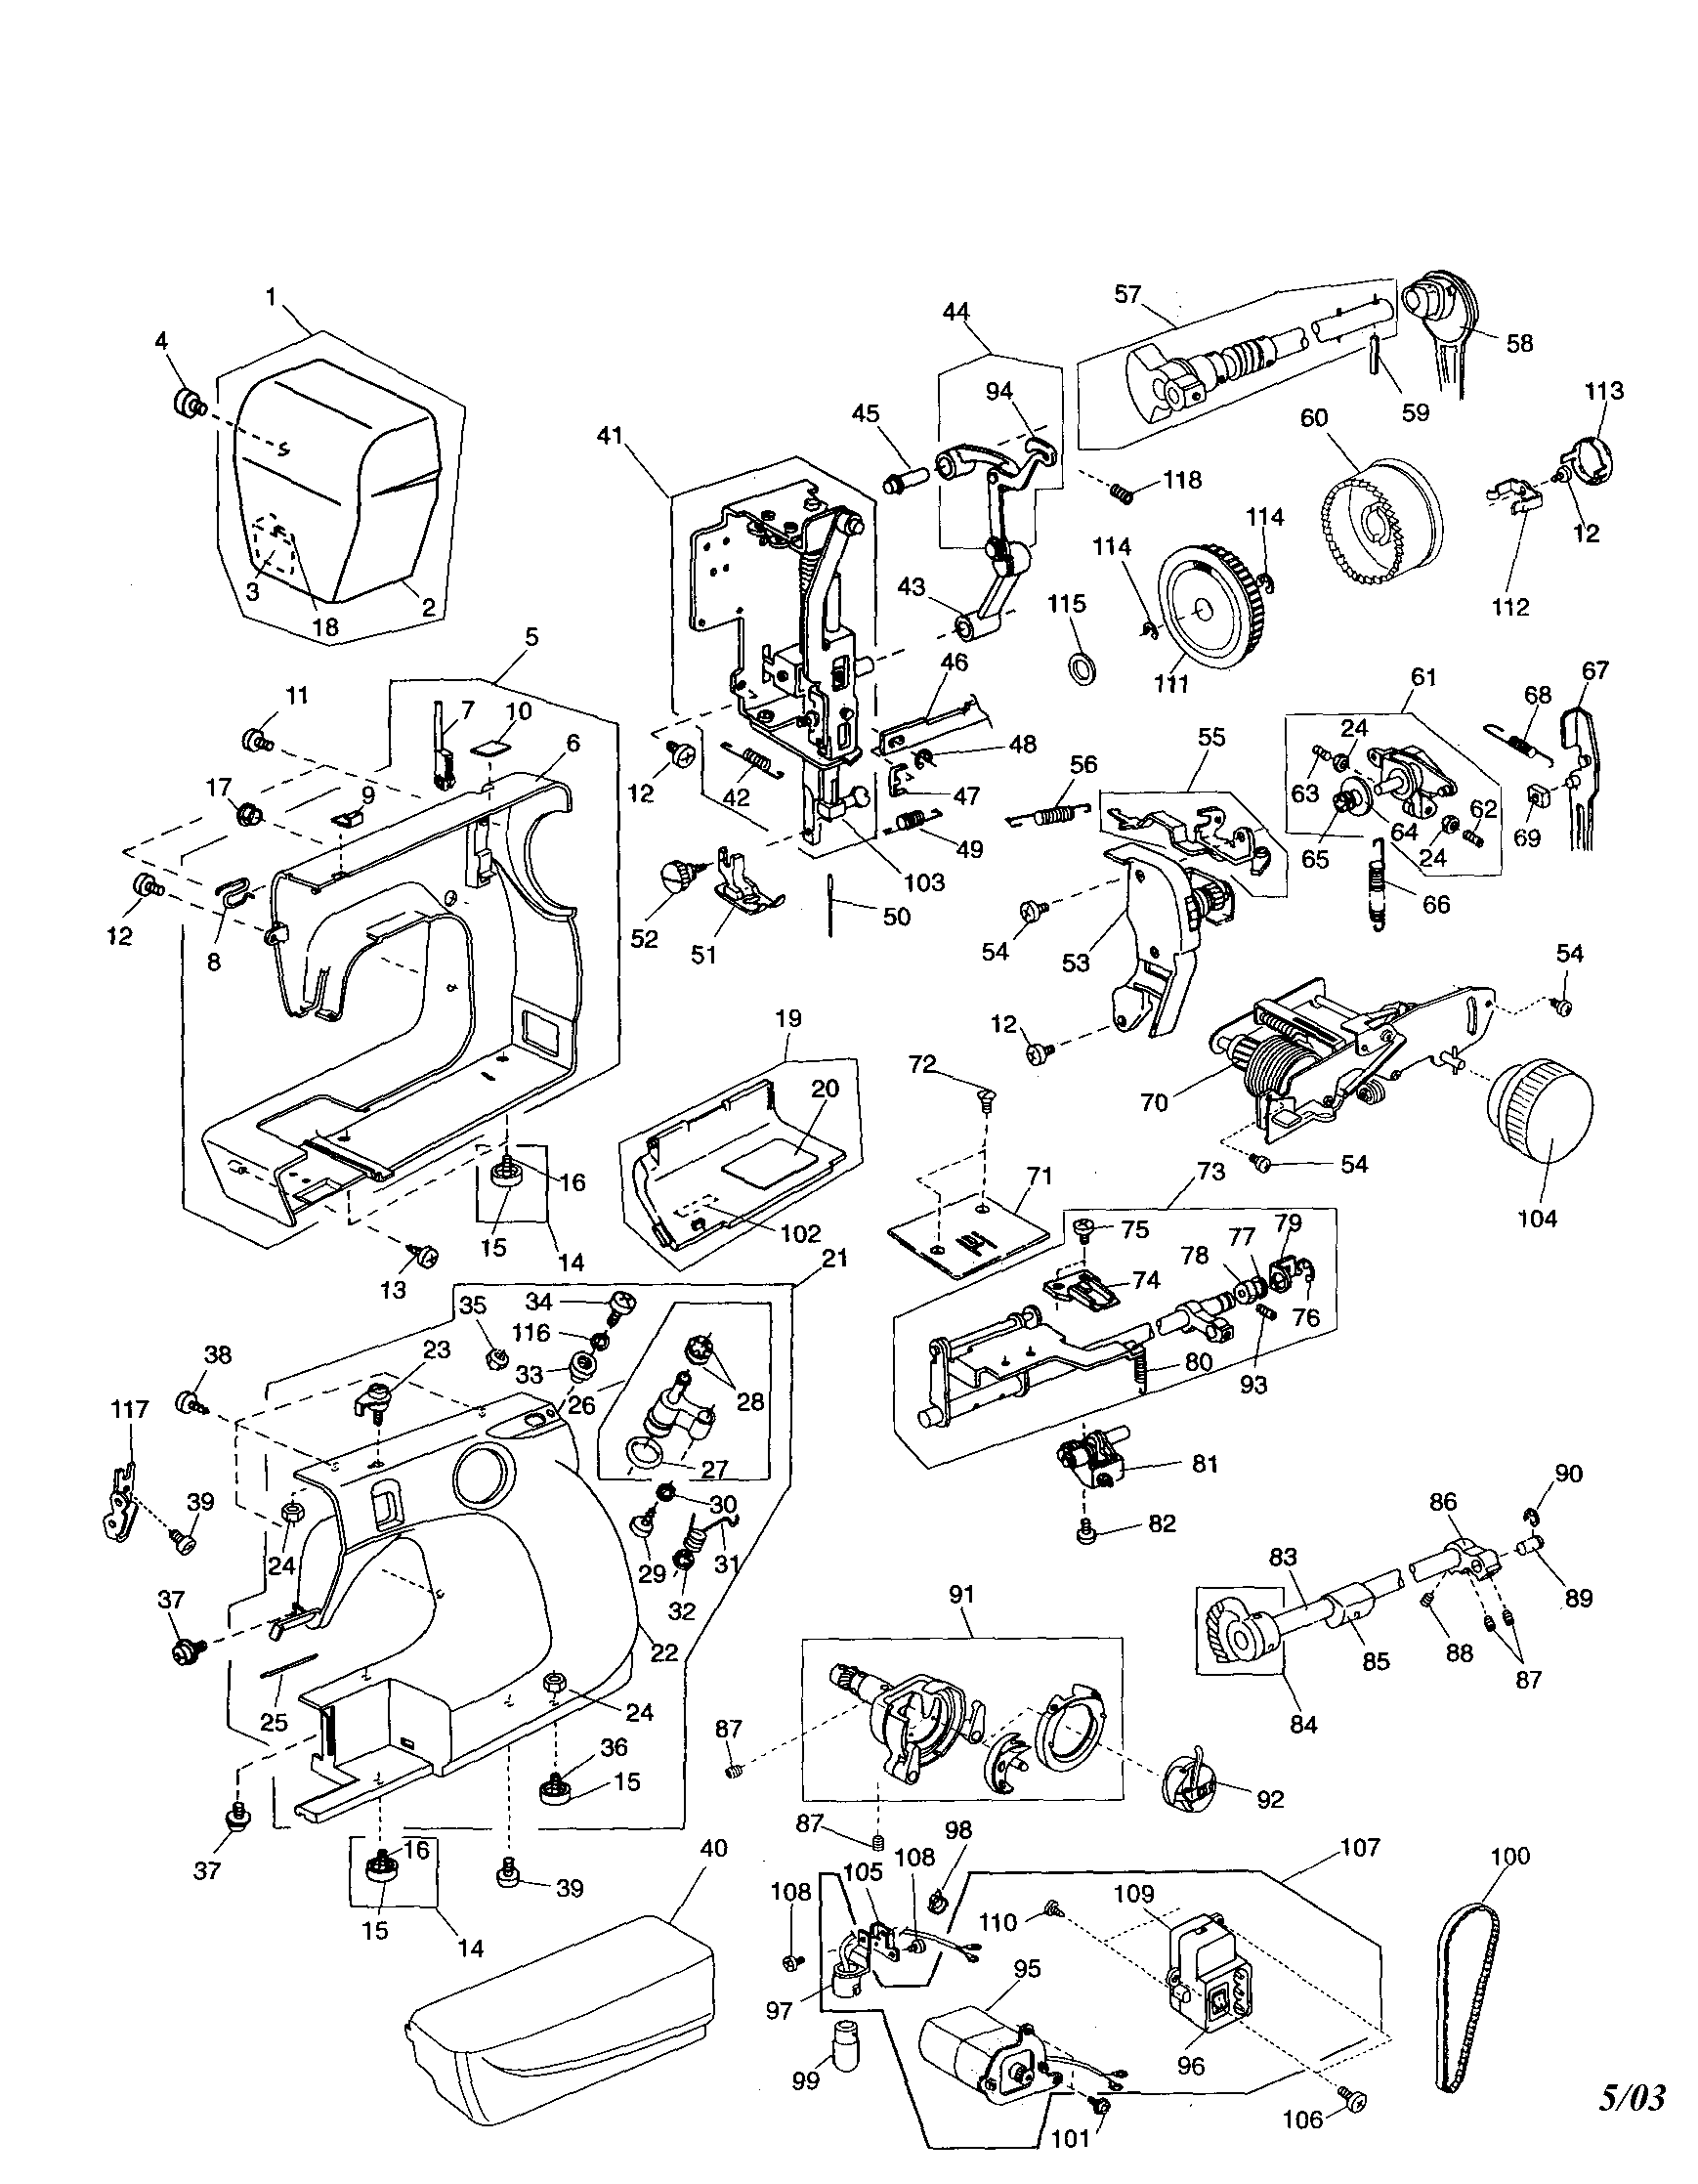 hight resolution of kenmore sewing machine model 38511206300 sewing machine parts diagram